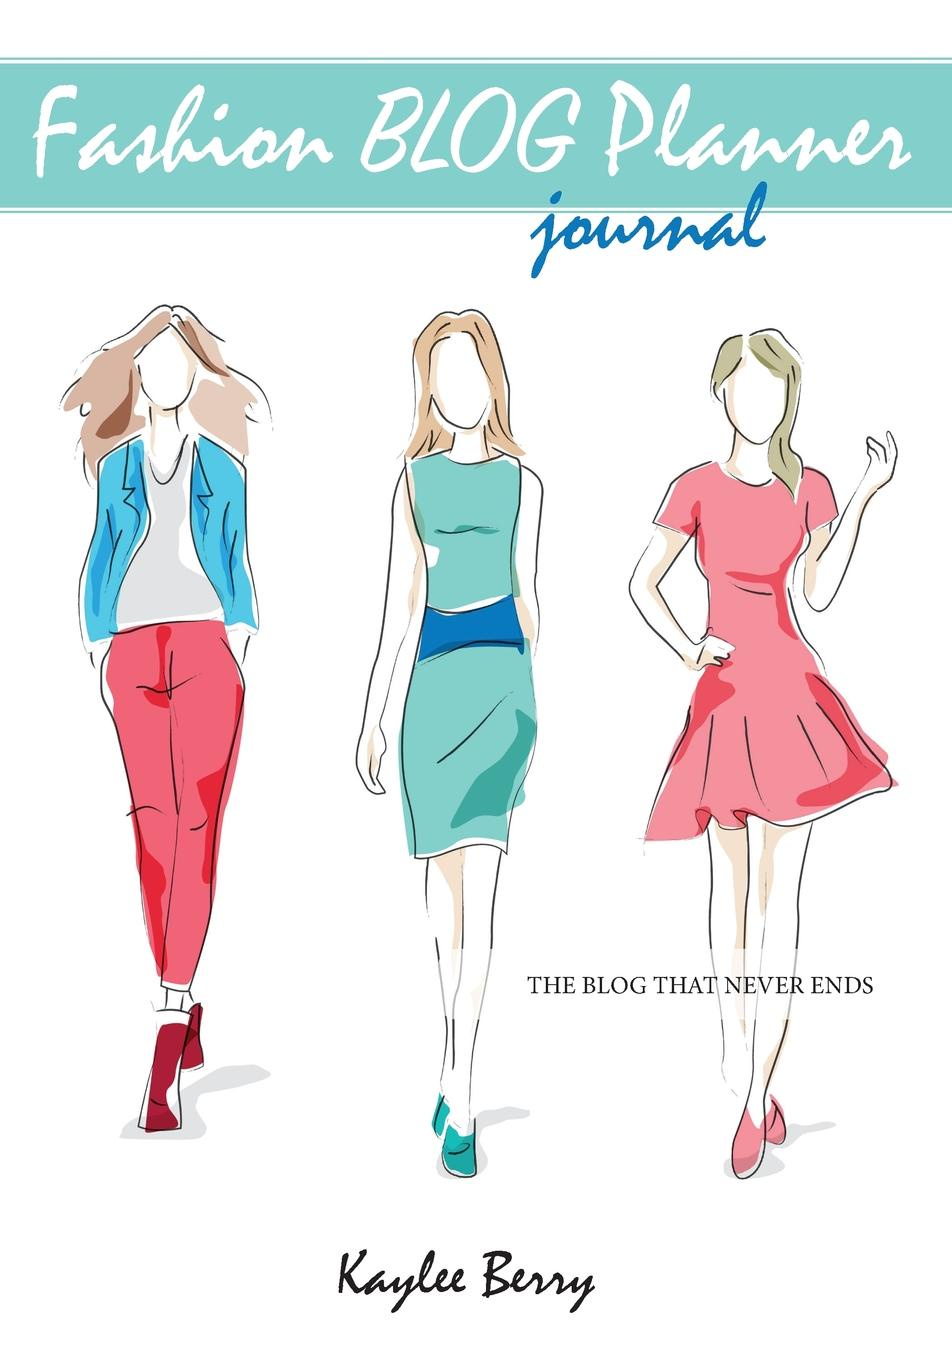 Kaylee Berry Fashion Blog Planner Journal - Style Blogging. Never run out of things to blog about again. kaylee berry lifestyle blog planner journal lifestyle blogging content planner never run out of things to blog about again